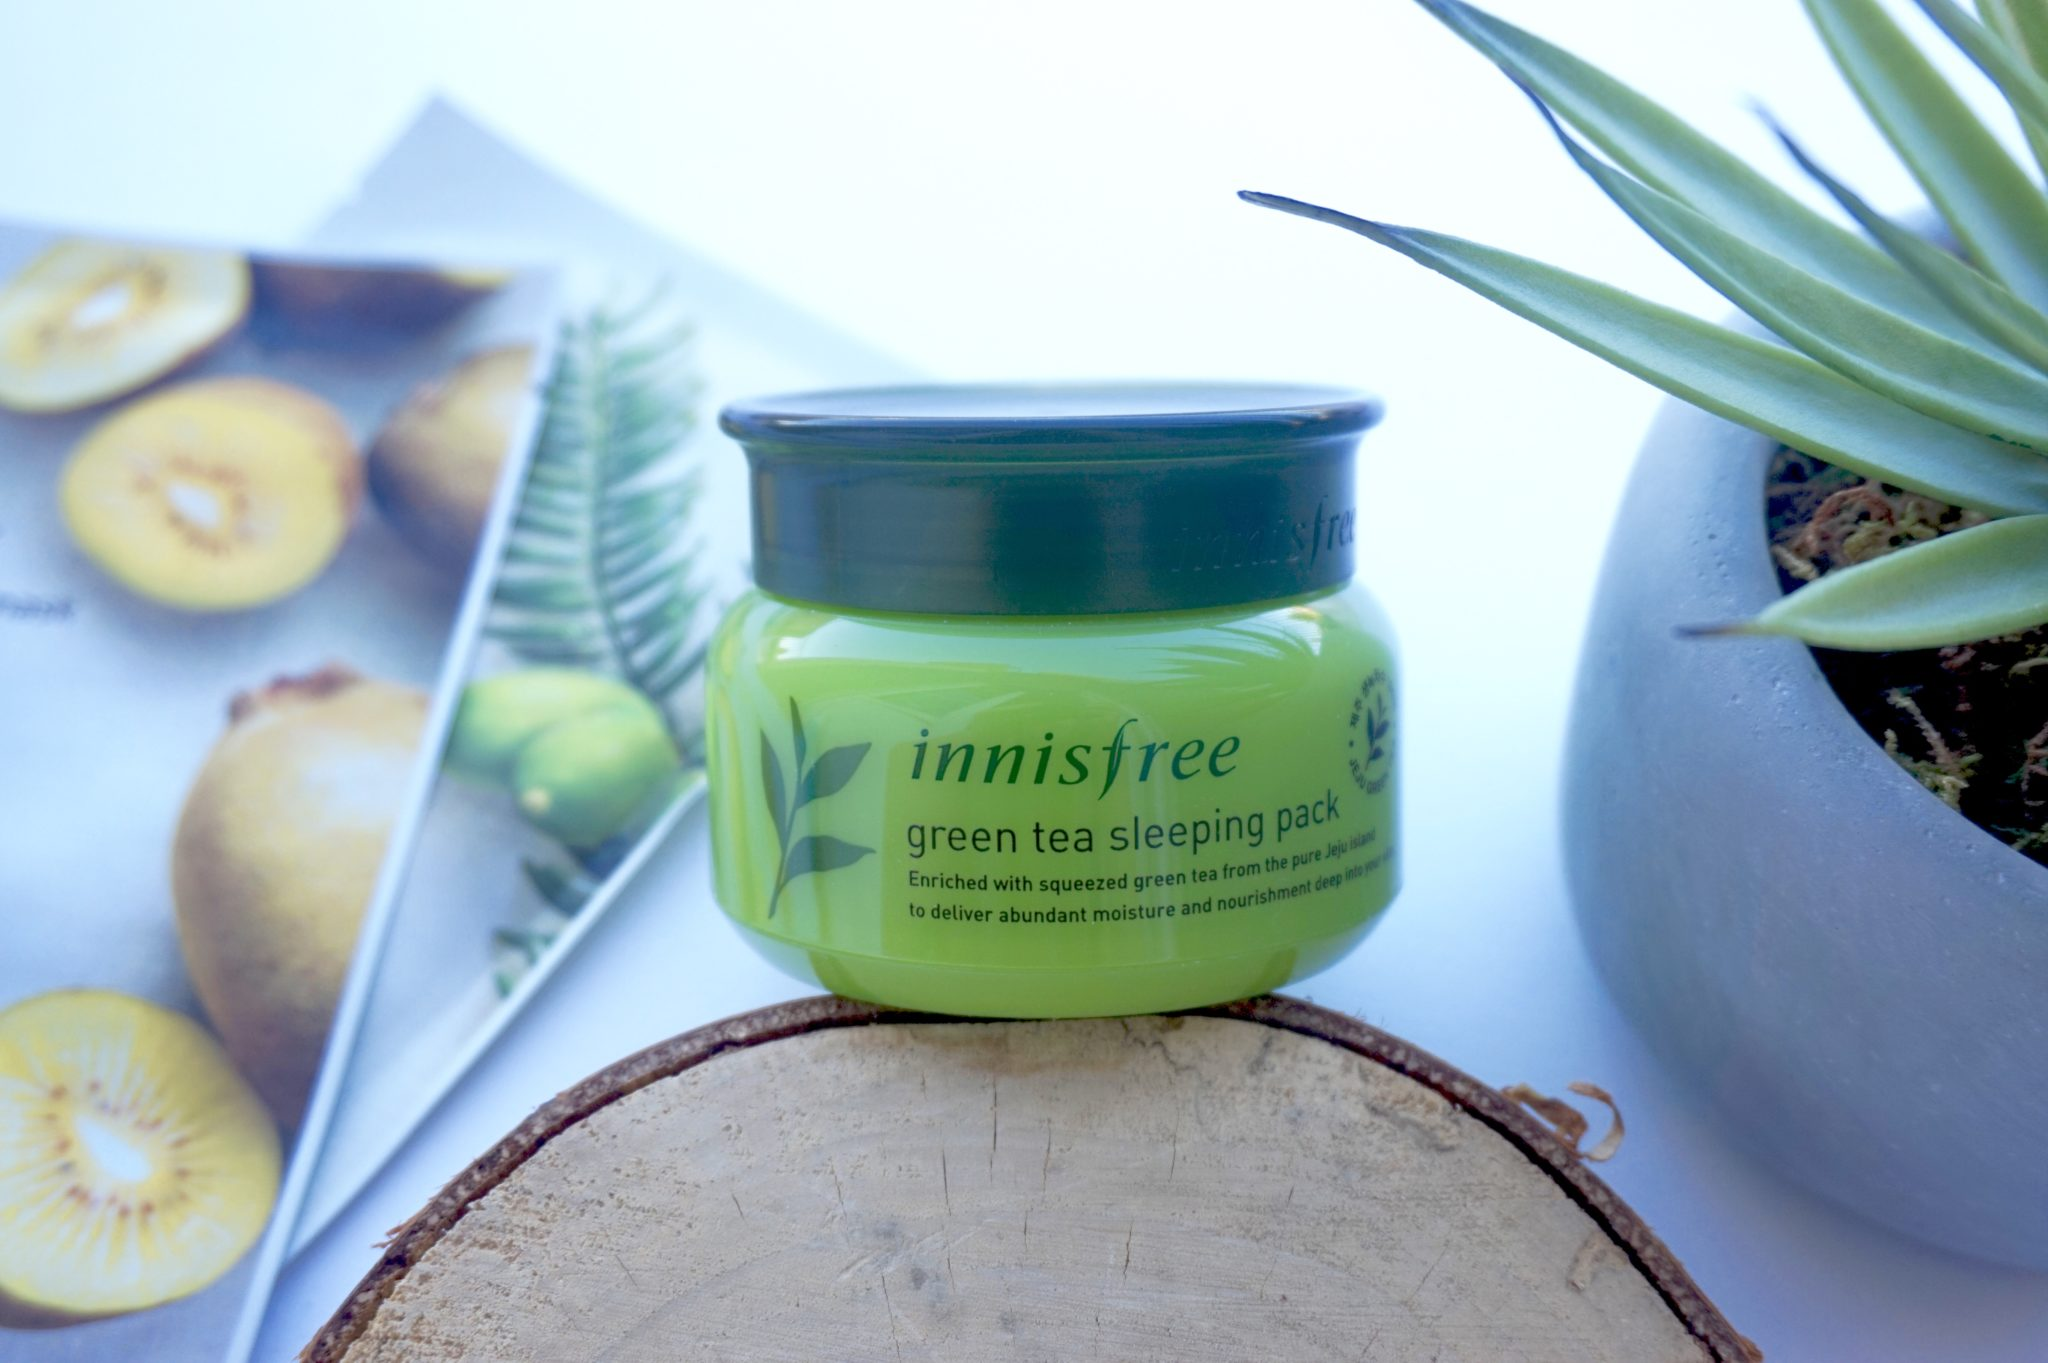 Revue Best Seller Innisfree : Green Tea Sleeping Pack